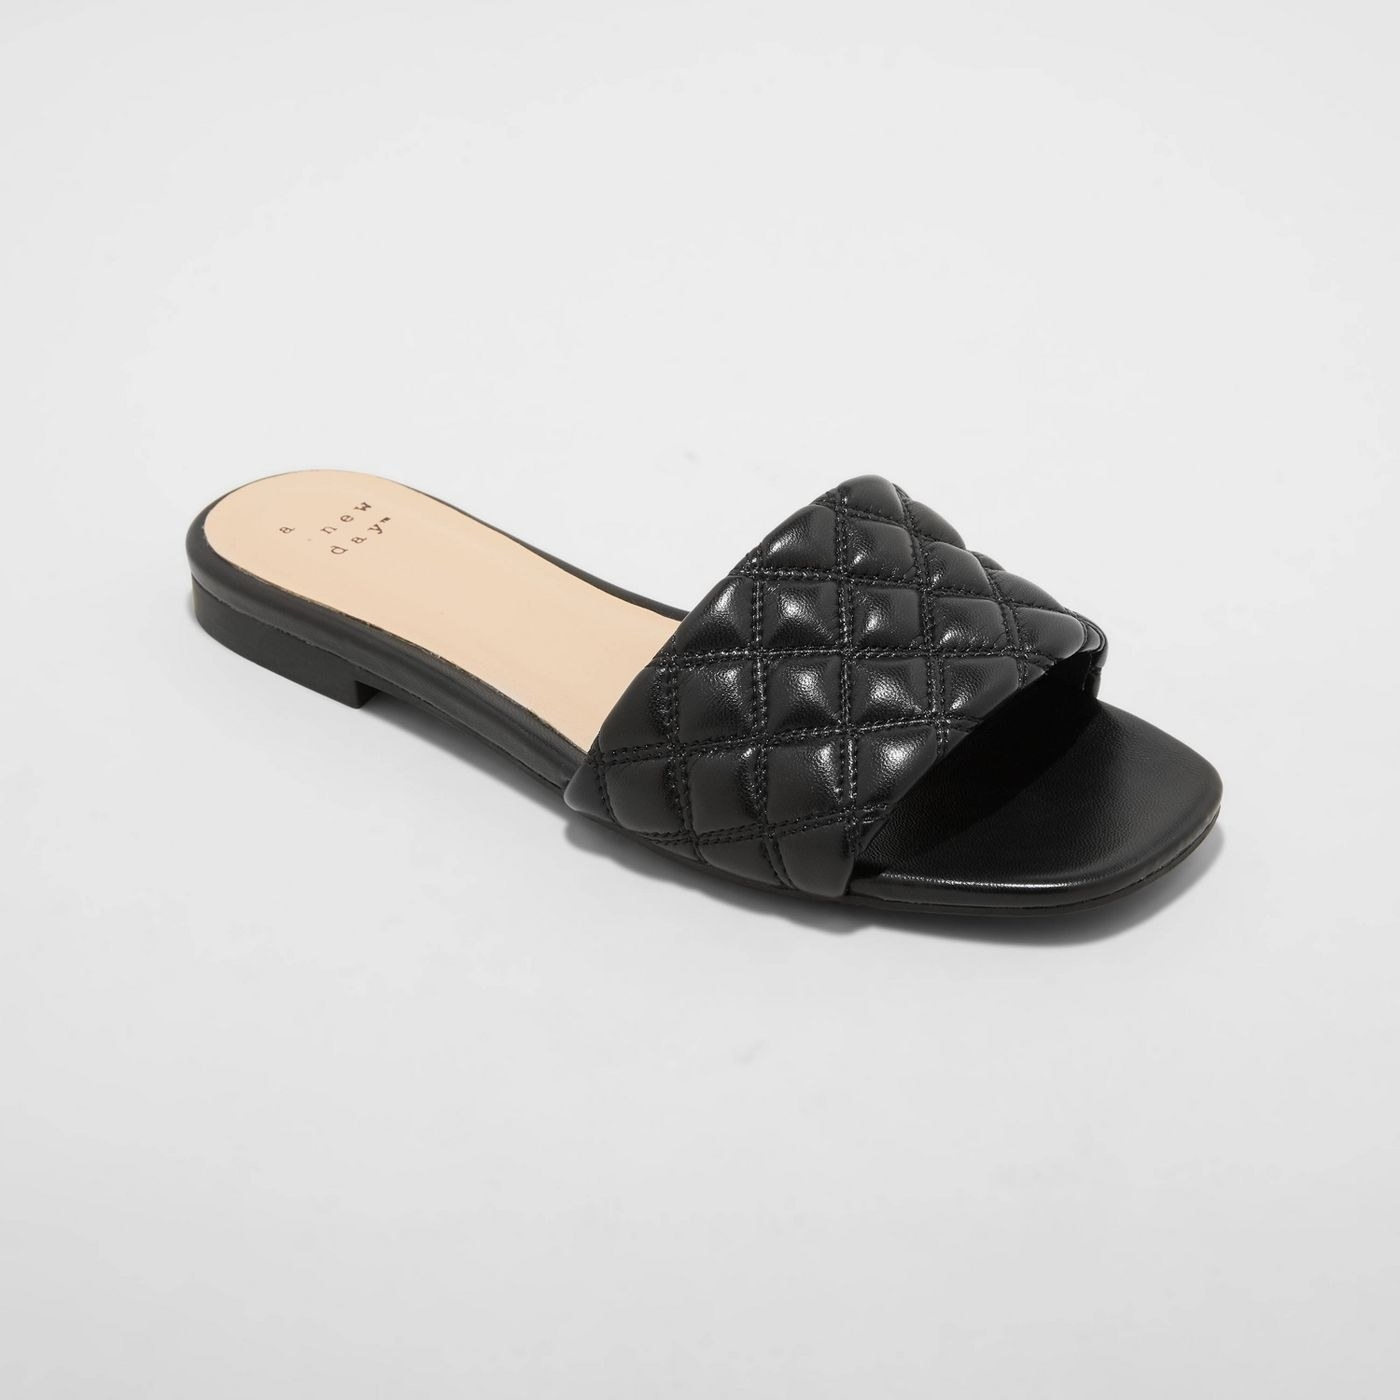 The quilted black slides